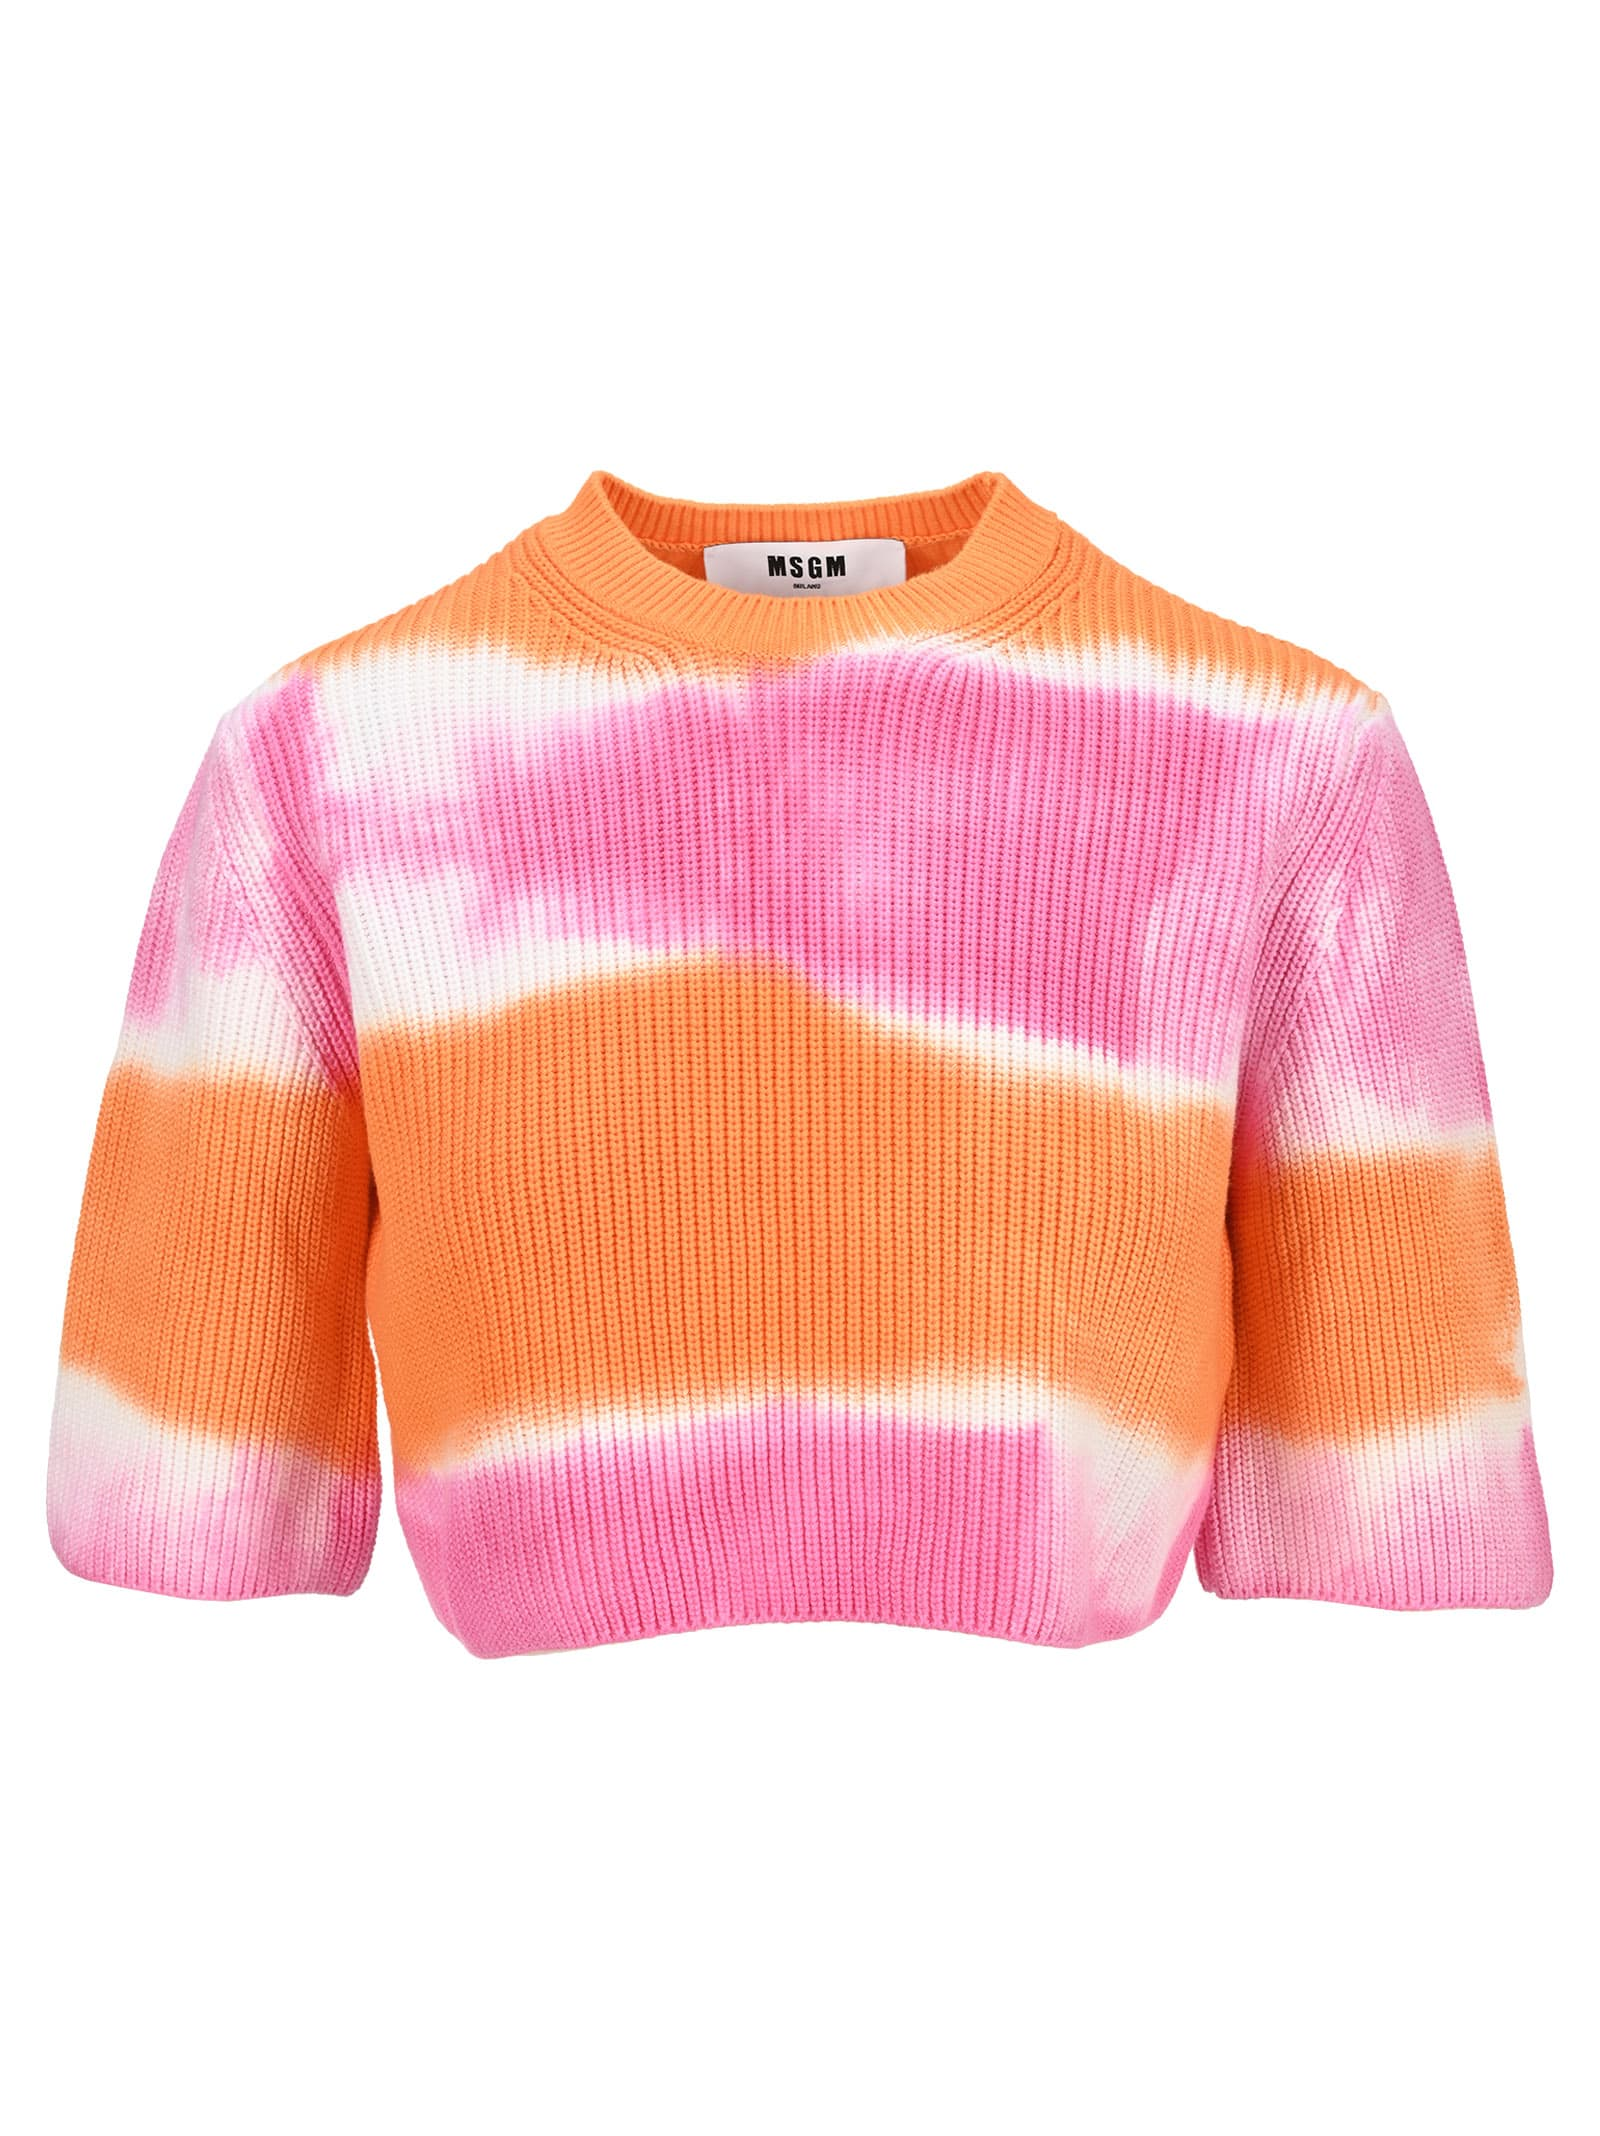 Msgm Cottons MSGM TIE-DYE CROPPED SWEATER